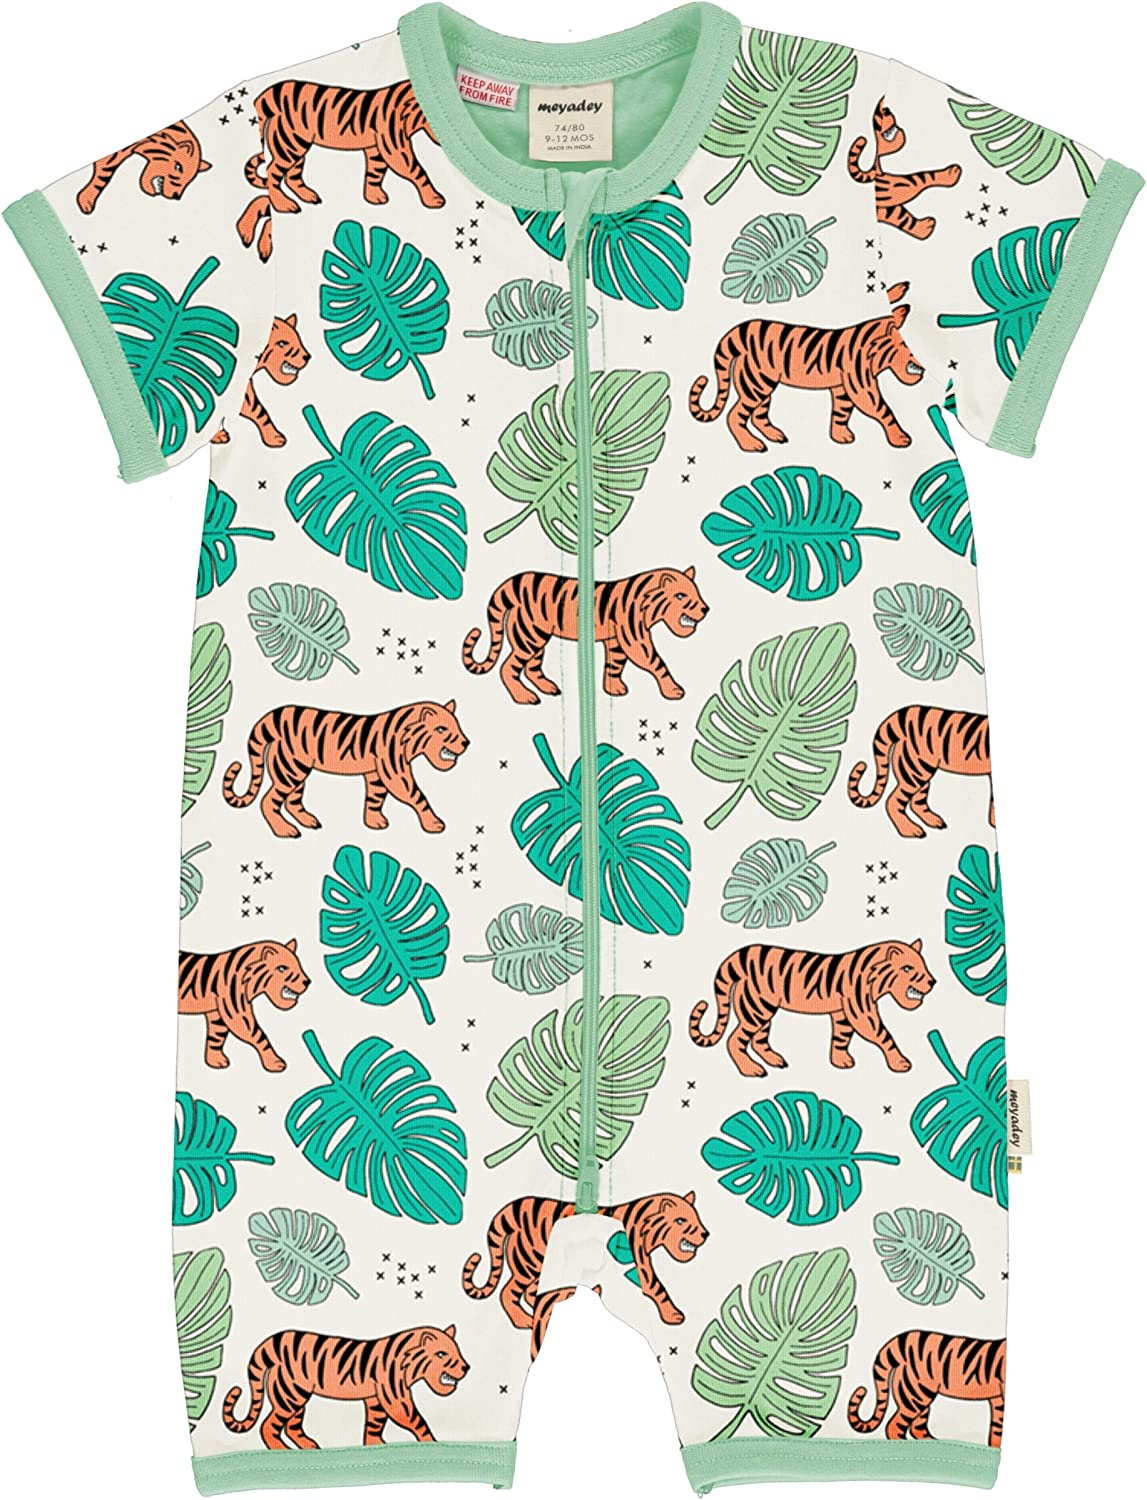 Meyadey Short Sleeved Rompersuit Tiger Jungle